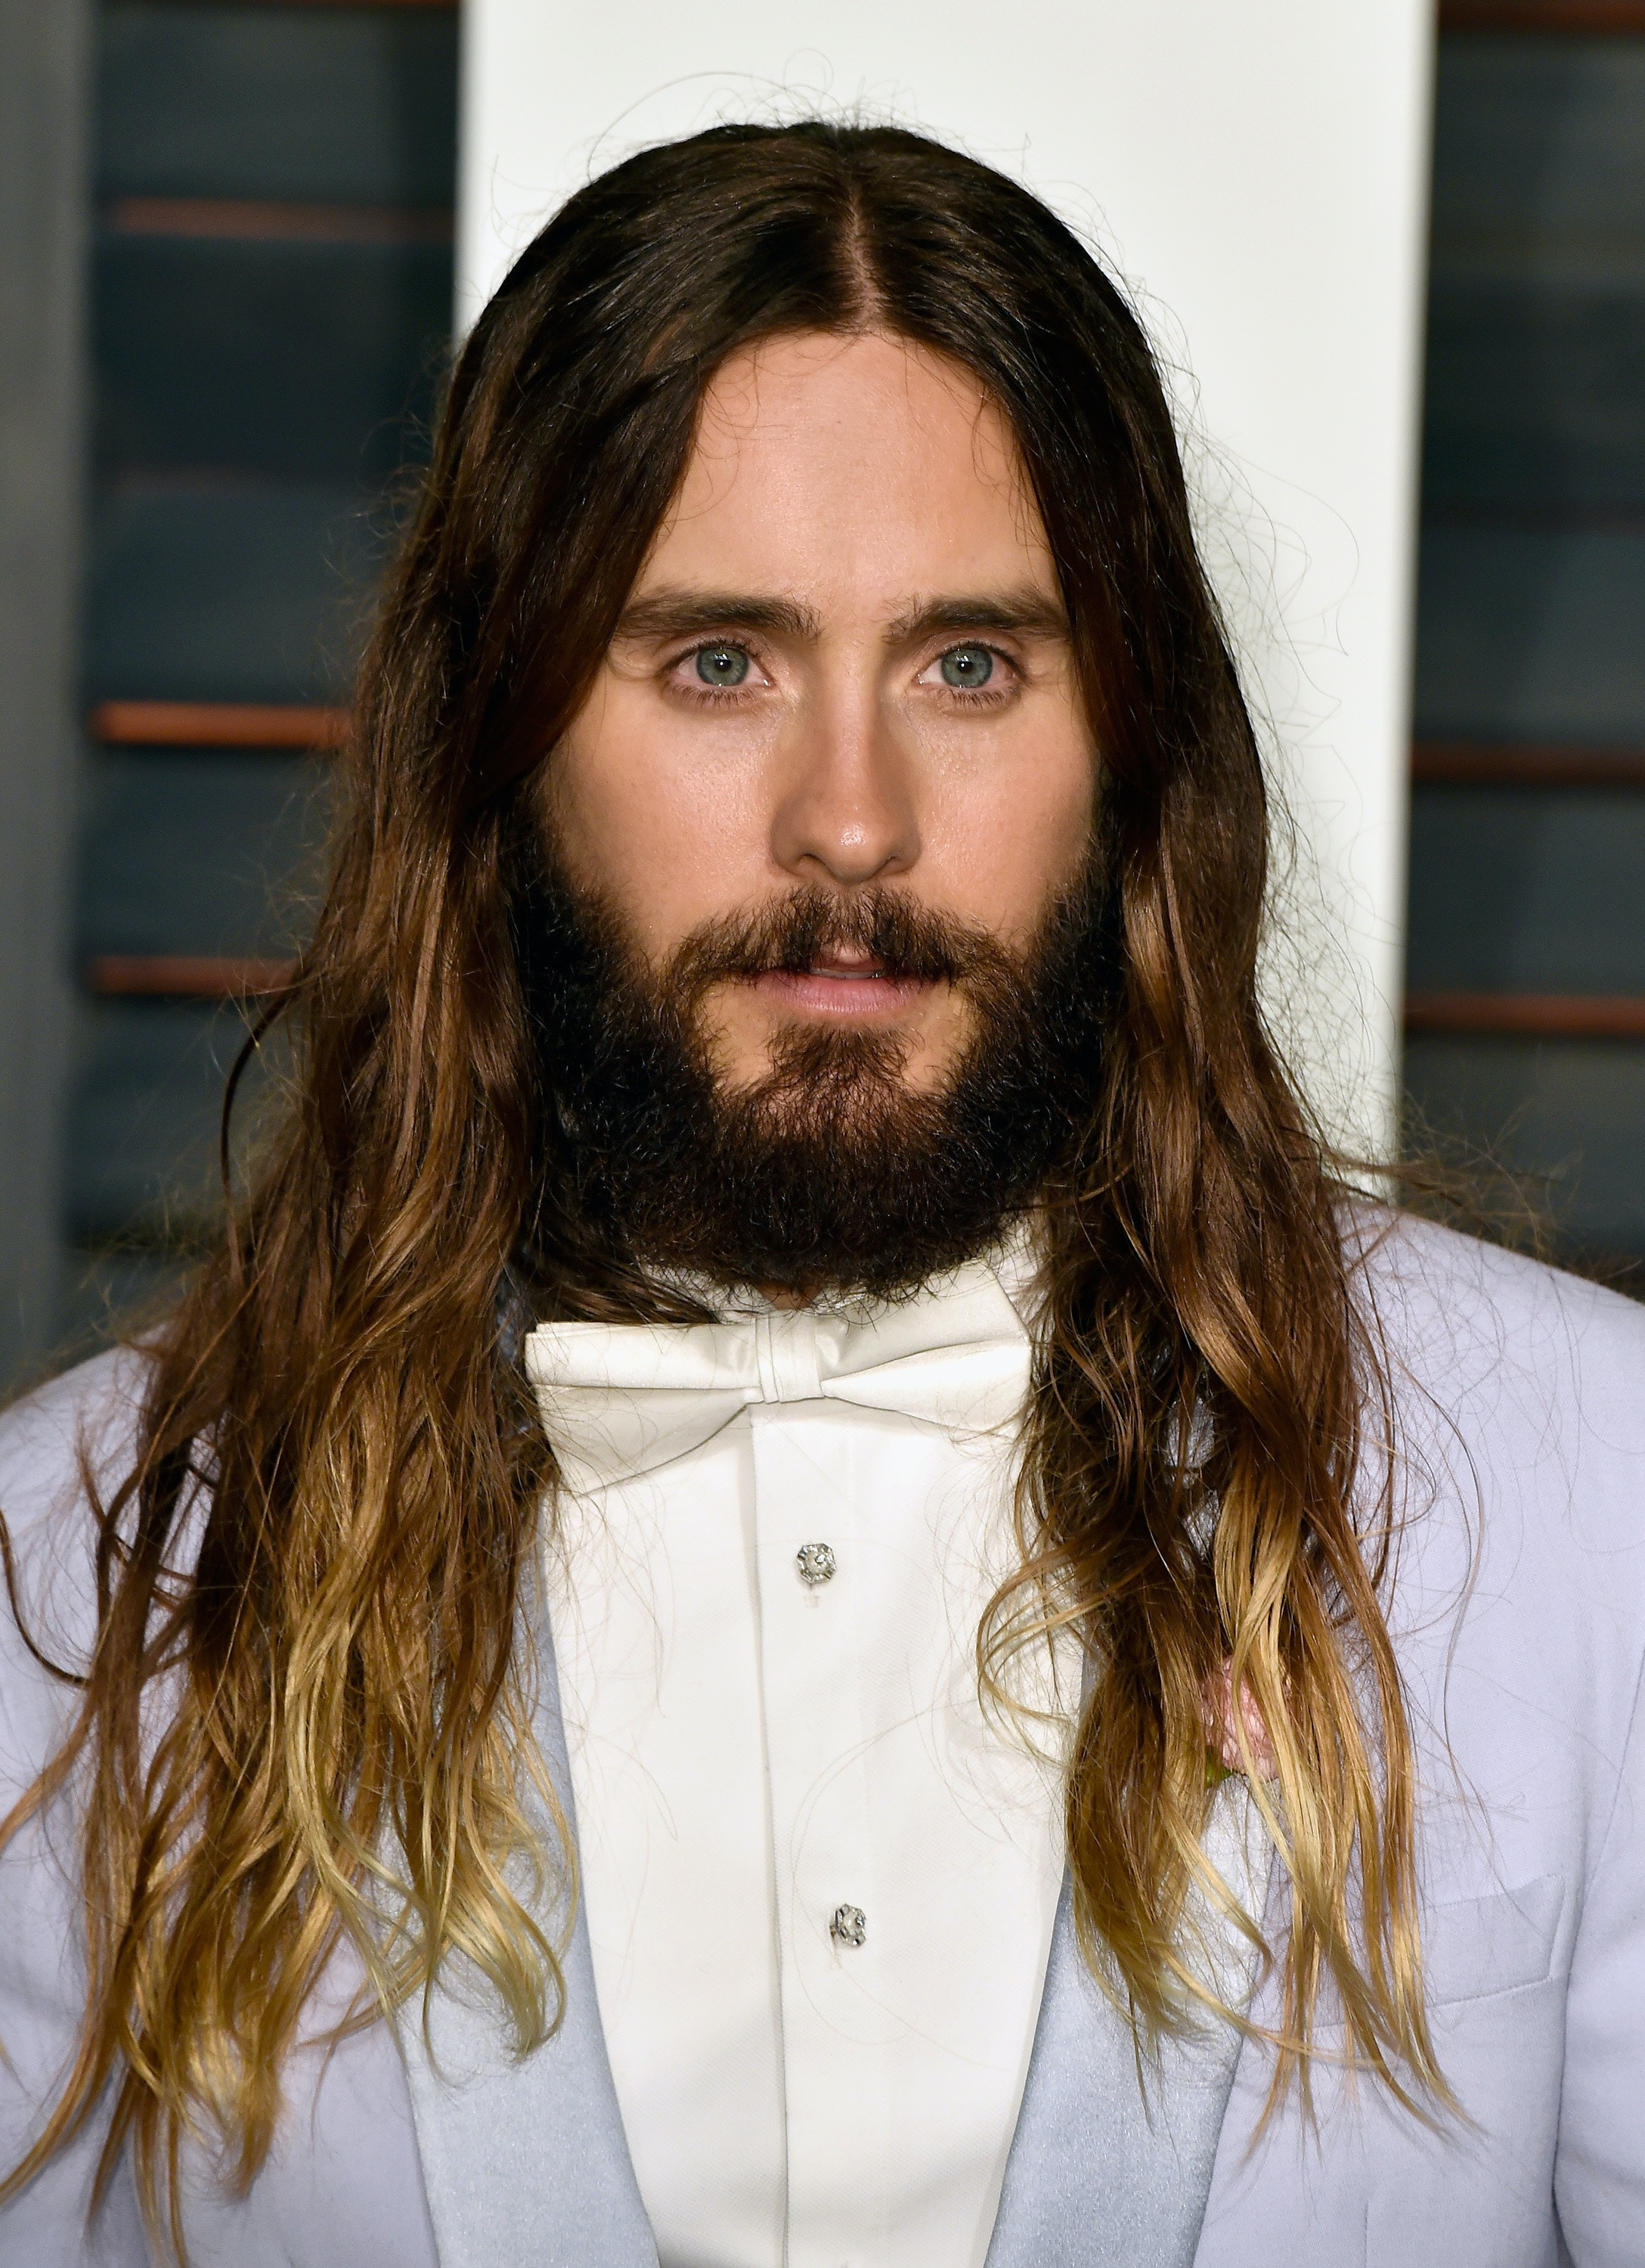 11 Jared Leto Long Hair Photos That Will Make You Pine For His Lost